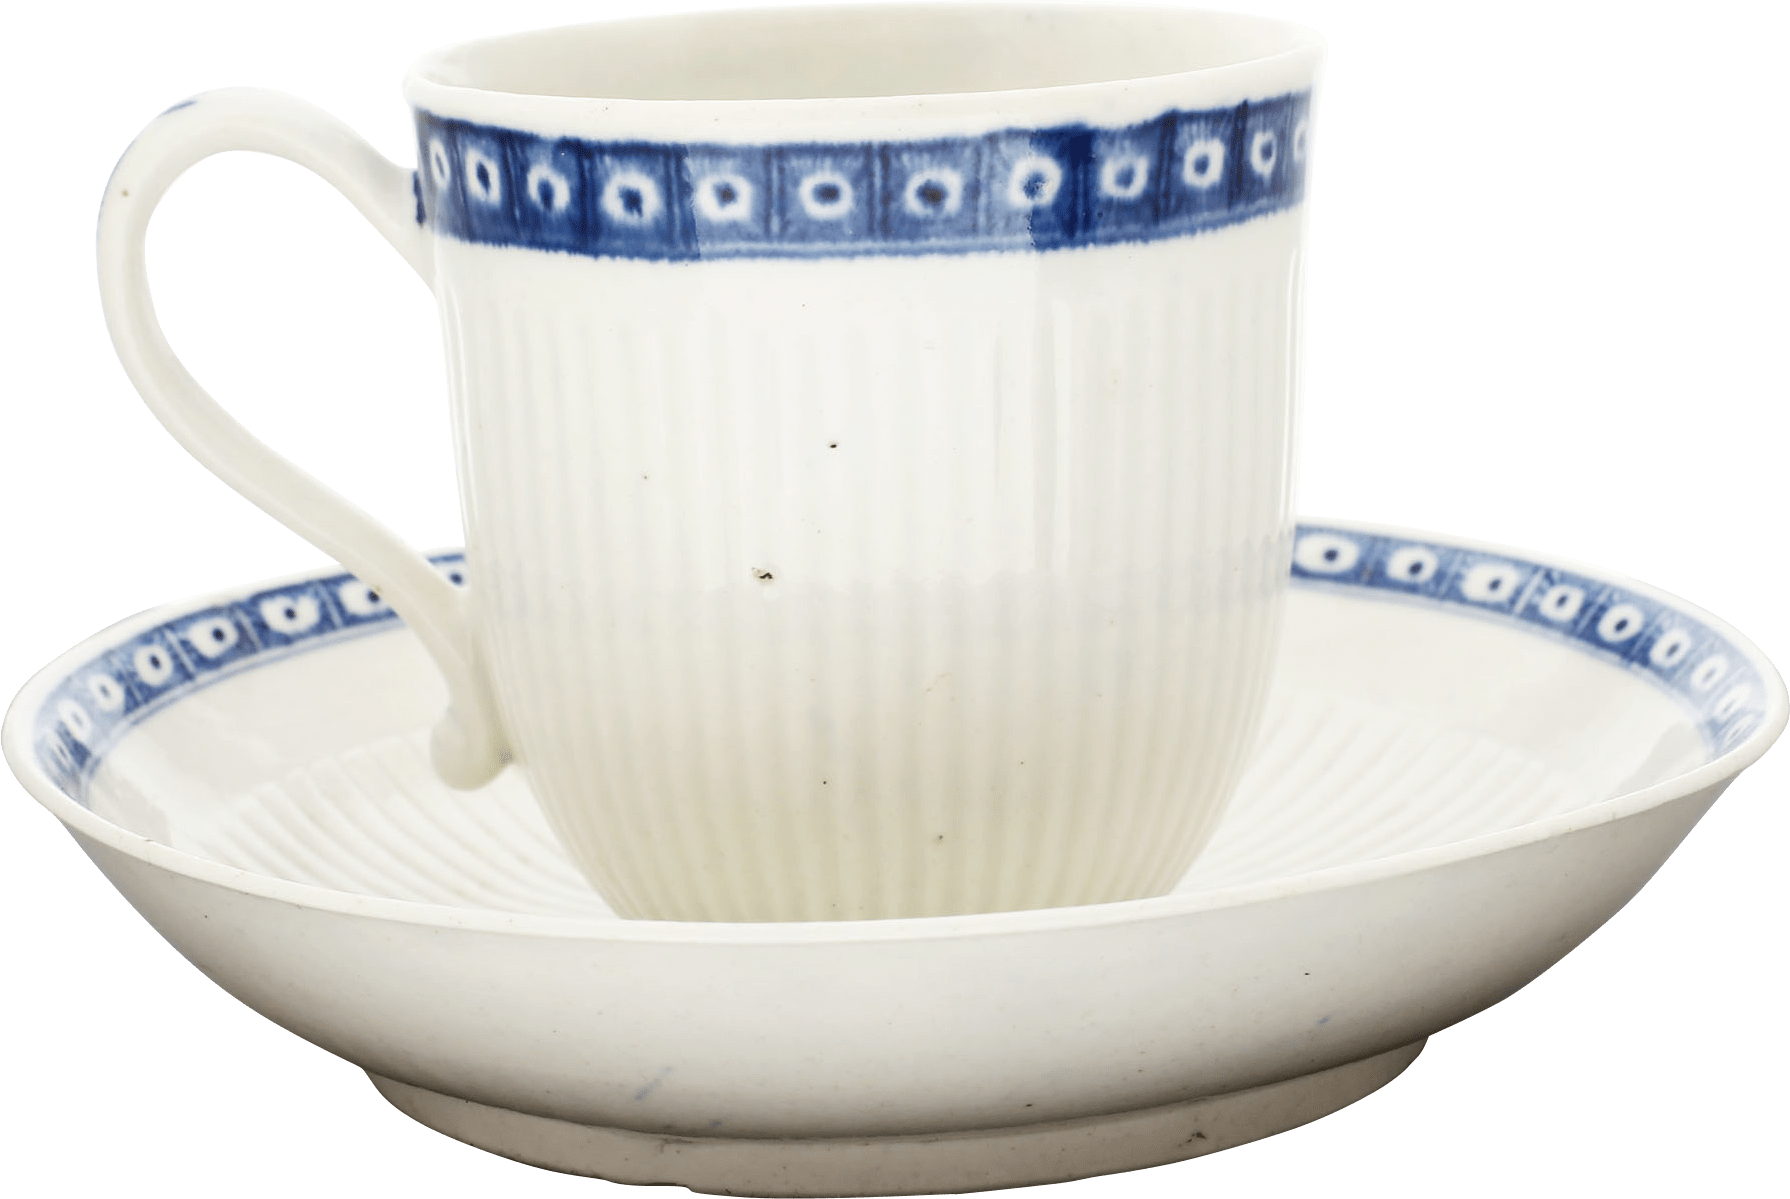 WORCESTER PORCELAIN EYE BORDER RIBBED COFFEE CUP AND SAUCER C.1770 - Fagan Arms